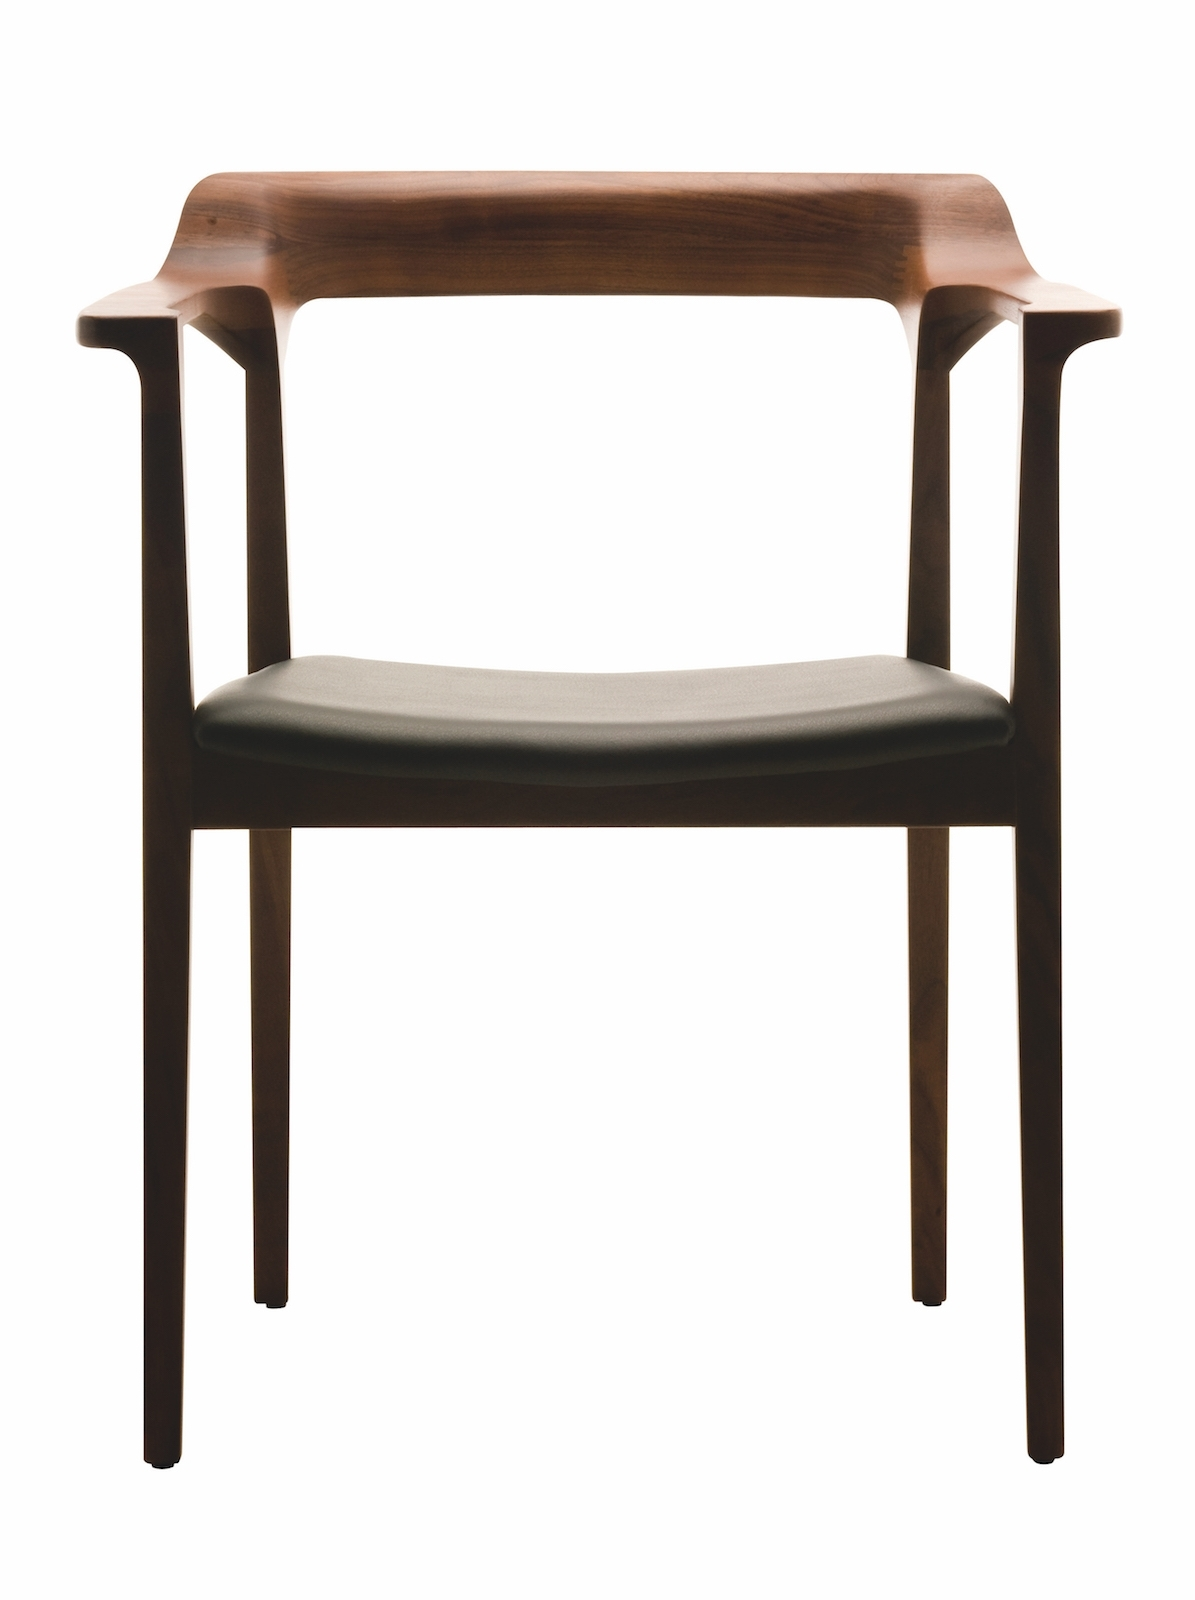 Black Dining Chairs Throughout Widely Used Caitlan Dining Chair In Black Leather And Walnut Finishnuevo (Gallery 23 of 25)